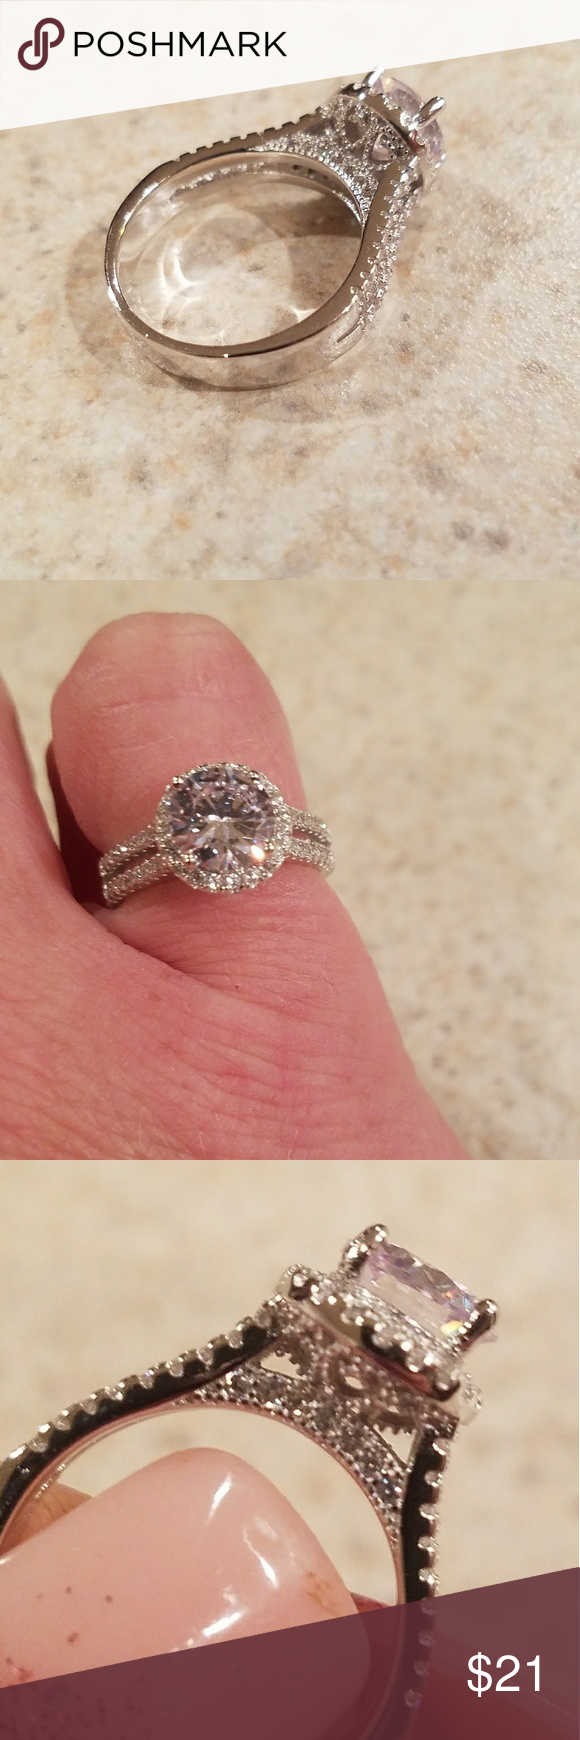 New White Diamonique Wedding Ring Size 6 Boutique | Pinterest